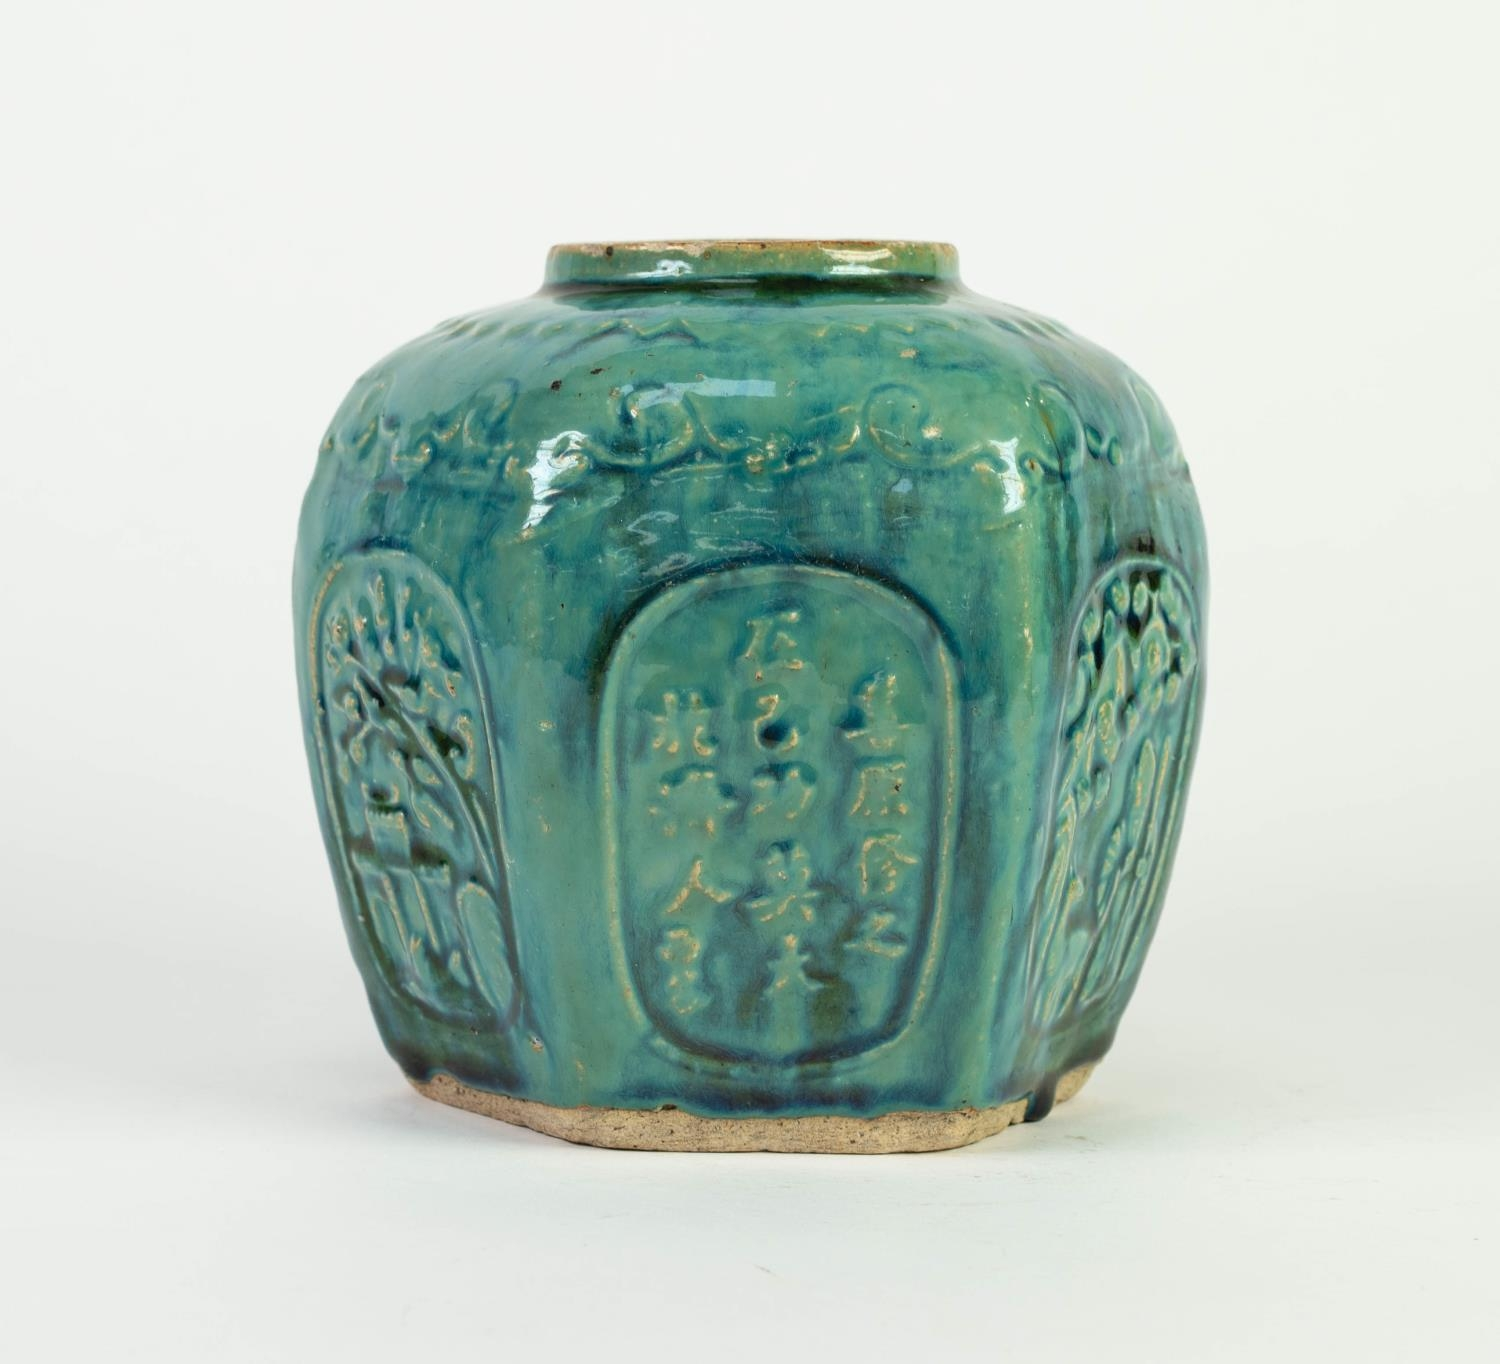 CHINESE PROVINCIAL WARE MOULDED POTTERY GINGER JAR, of hexagonal form, decorated with panels - Image 4 of 5